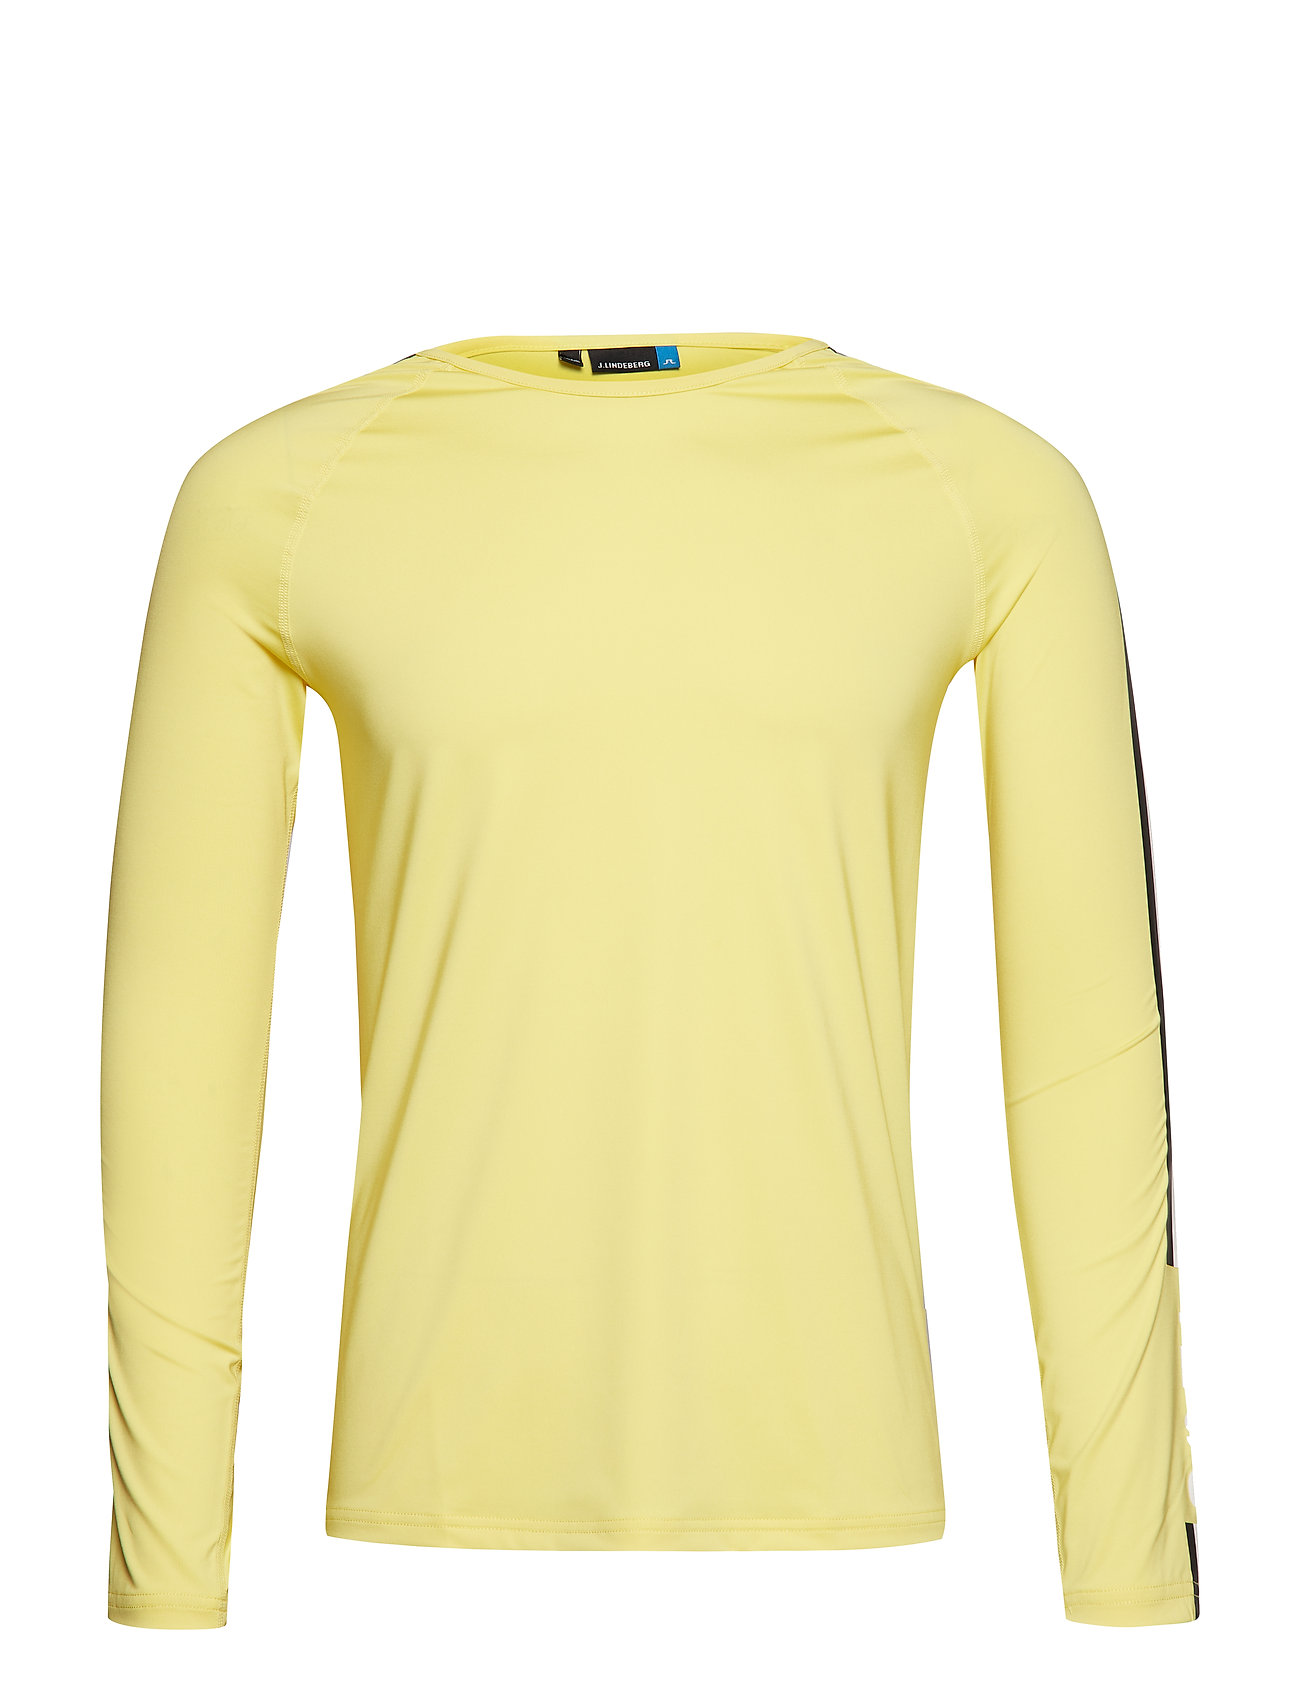 J. Lindeberg W AVRIL POLY JERSEY - BUTTER YELLOW